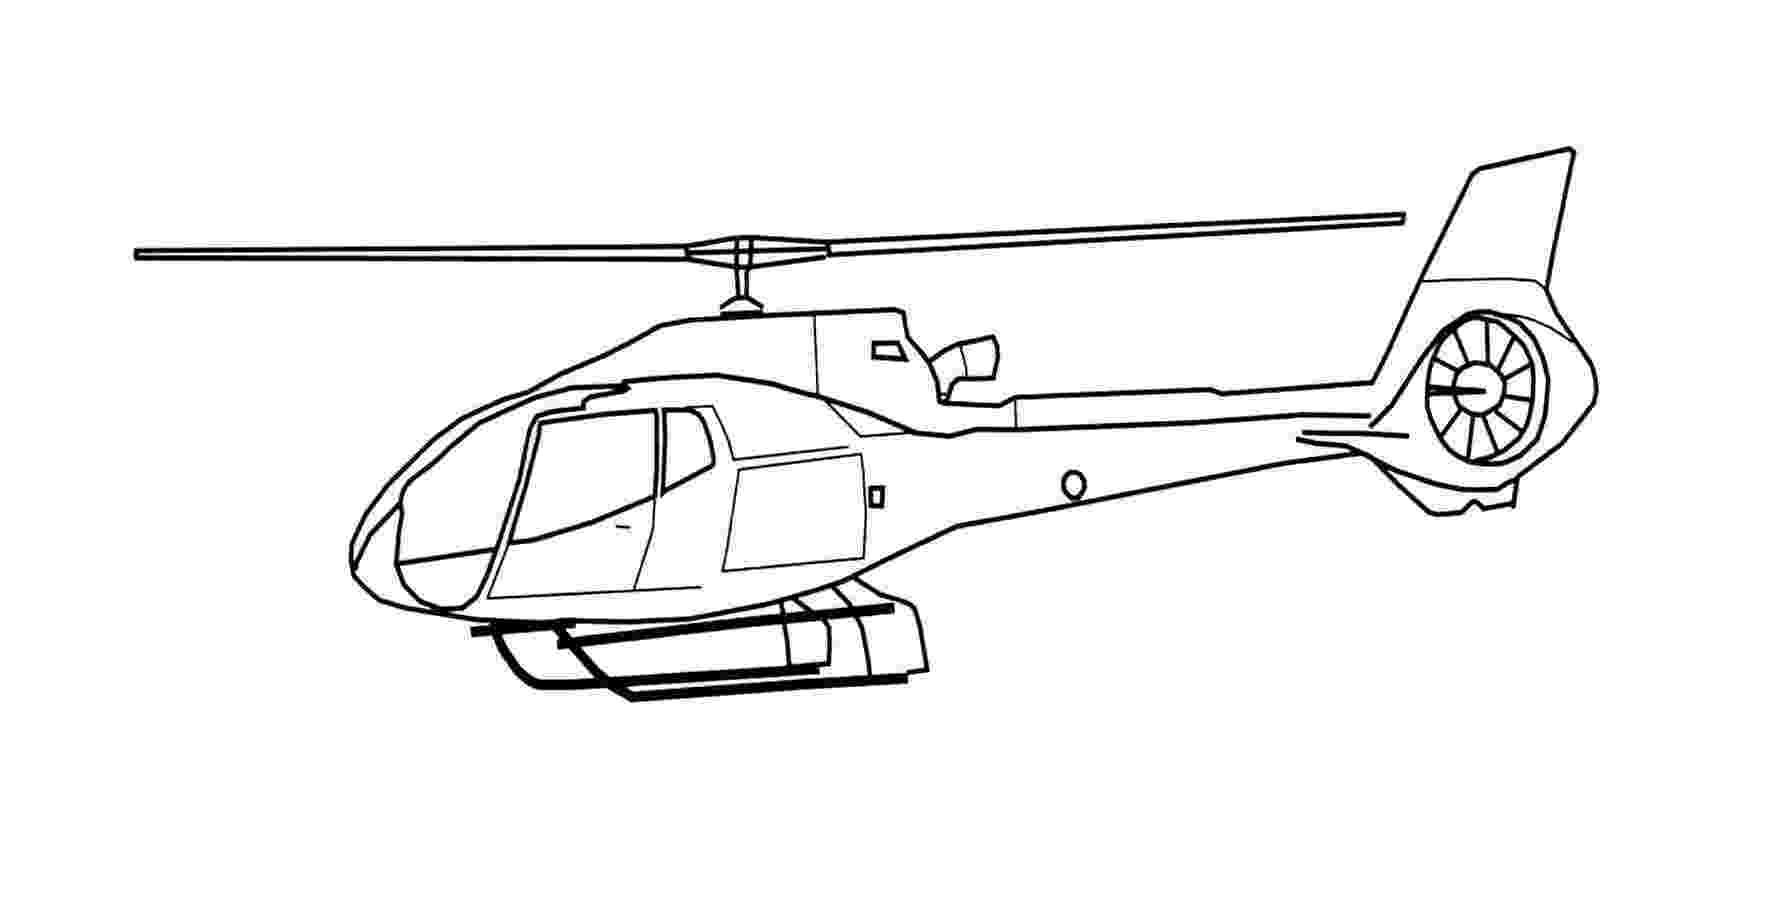 helicopter coloring page helicopter coloring pages to download and print for free helicopter coloring page